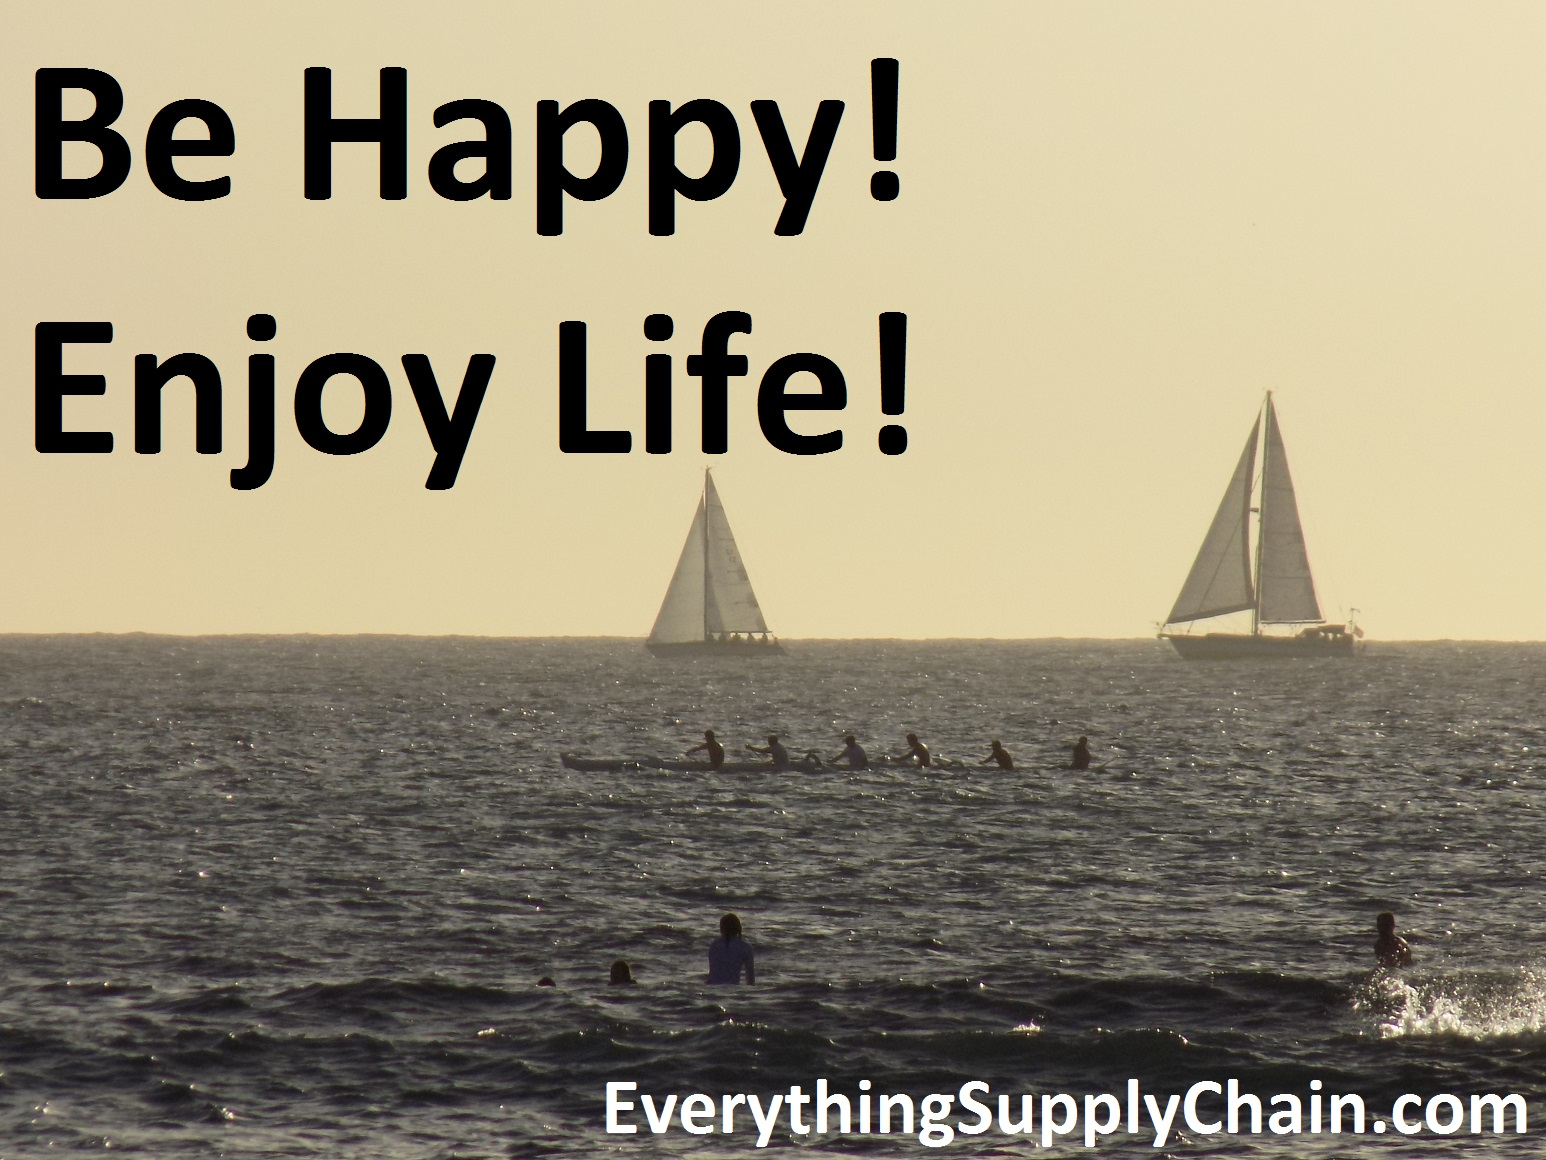 Quotes About Sailing And Life Interesting Be Happy Enjoy Life A Few Nice Pictures With Quotes Reminding Us